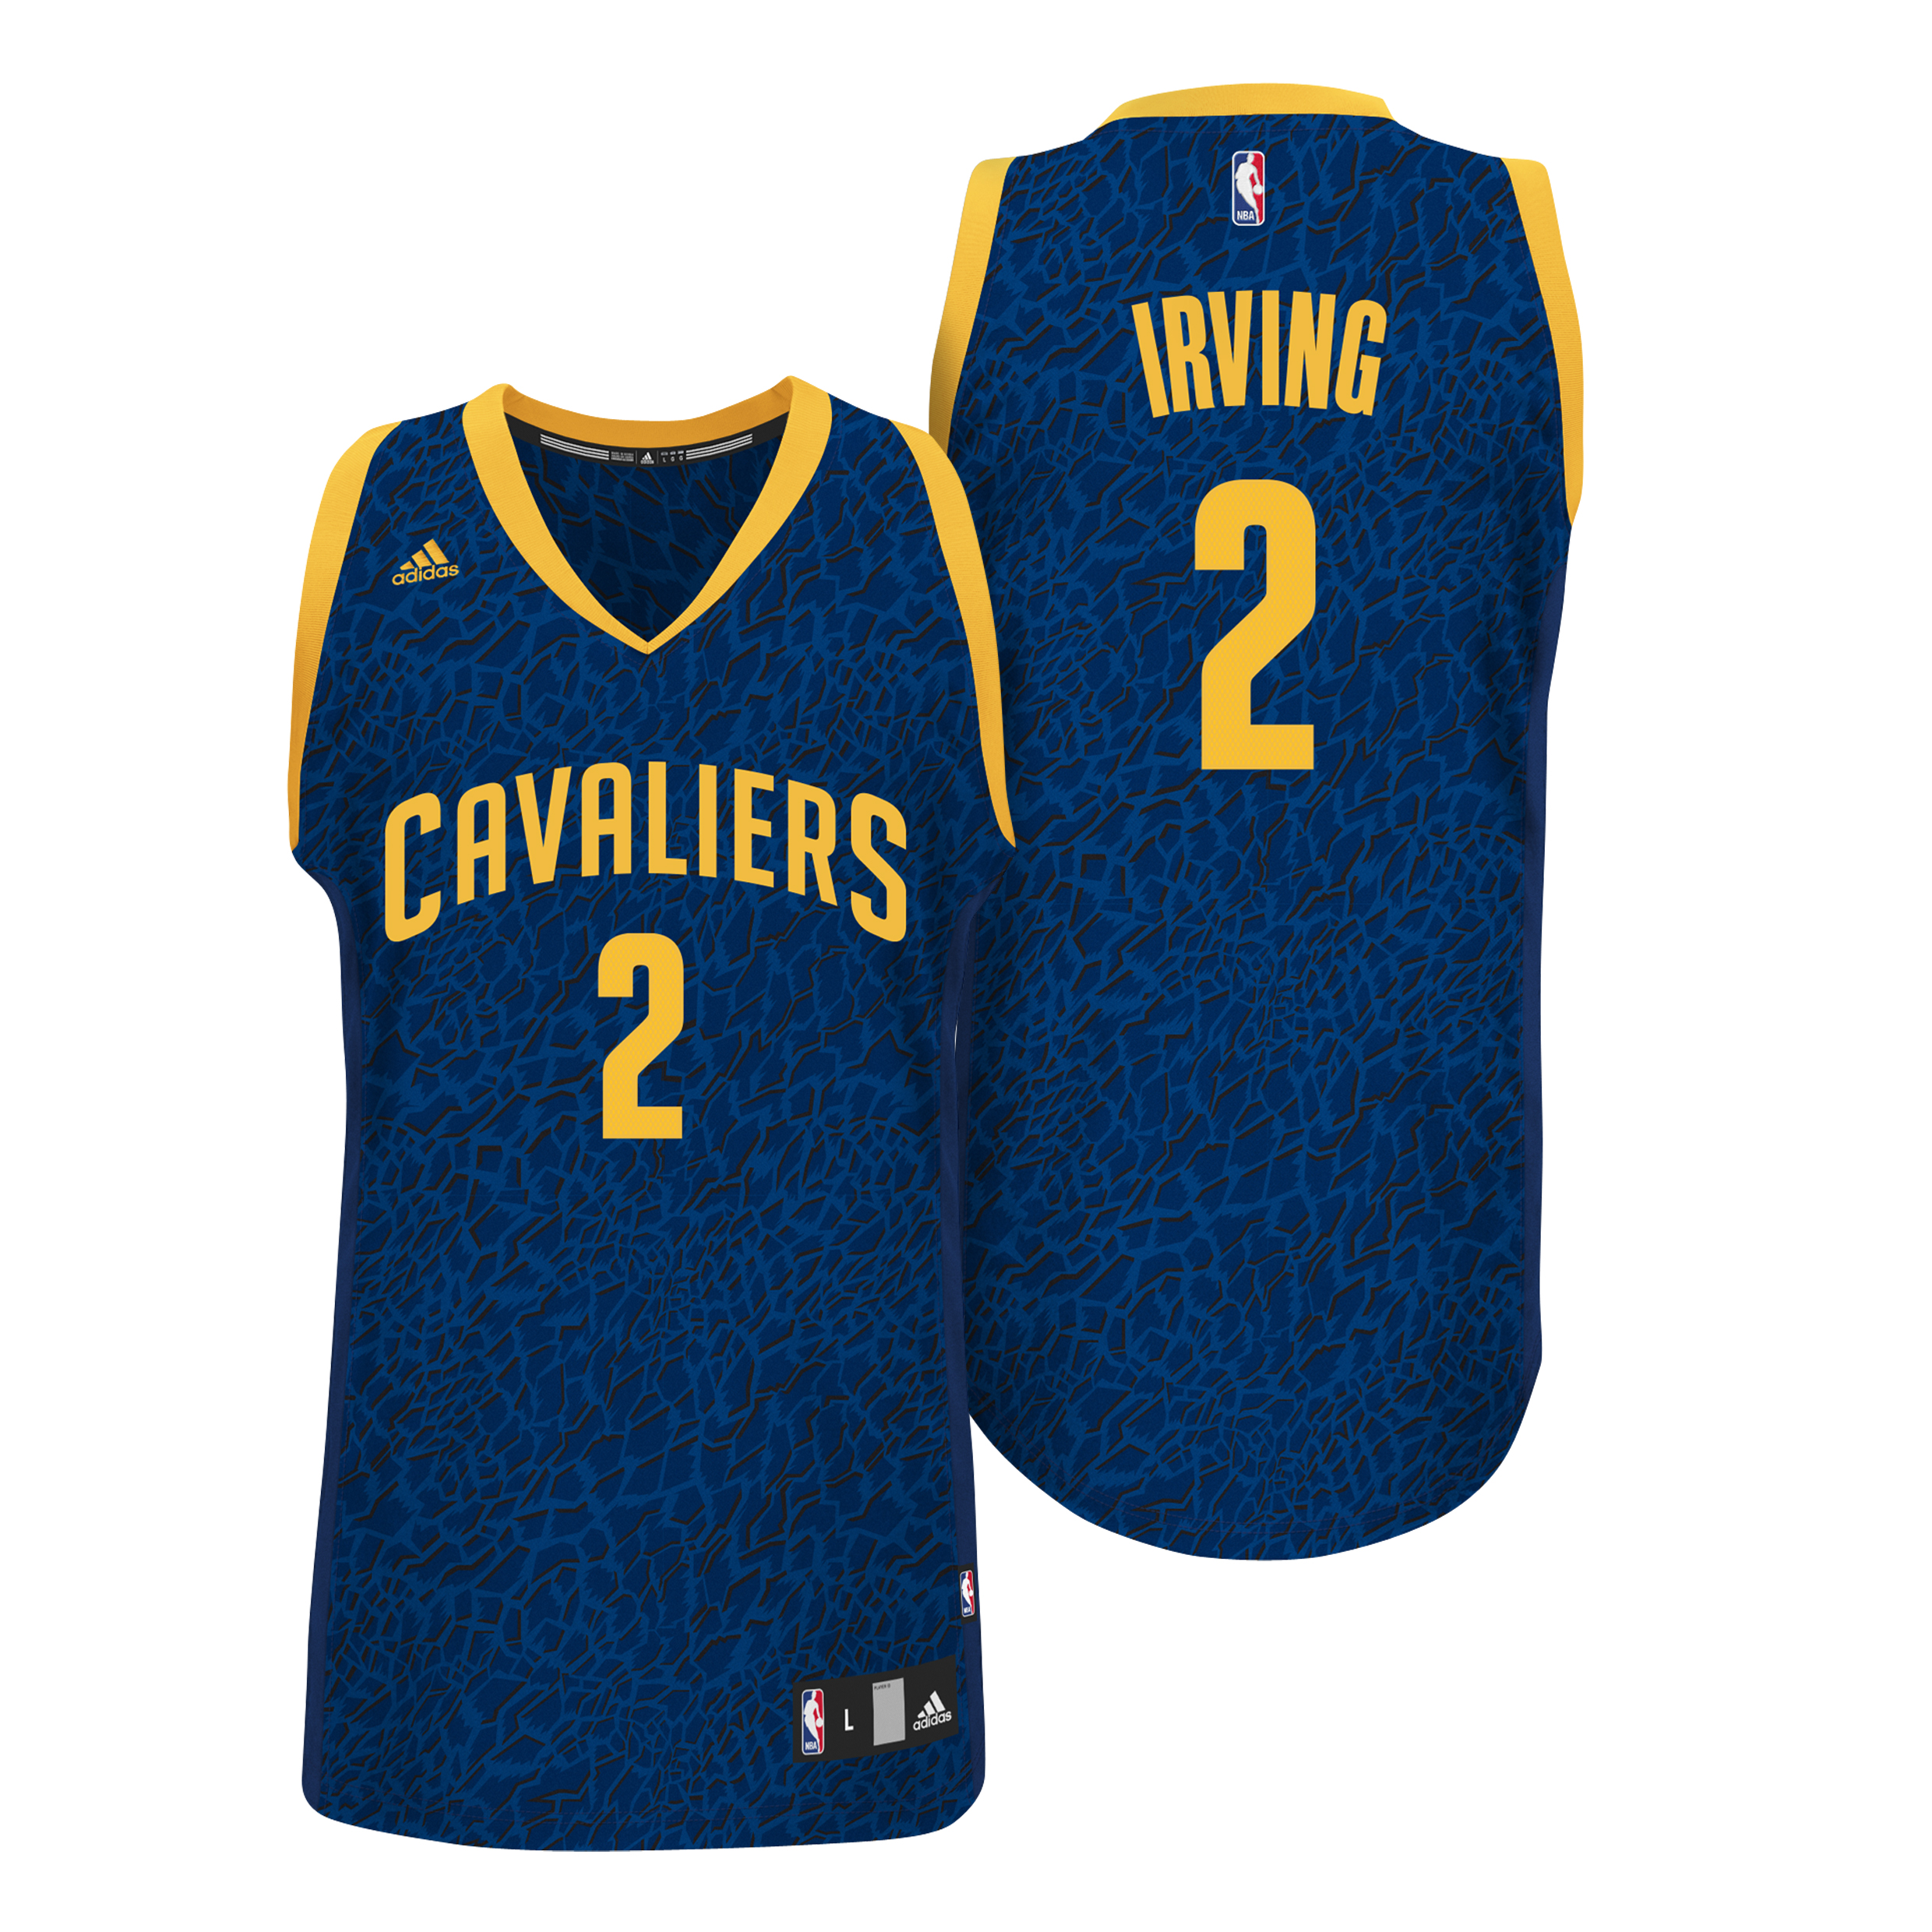 Cleveland Cavaliers Crazy Light Swingman Jersey -Kyrie Irving - Mens